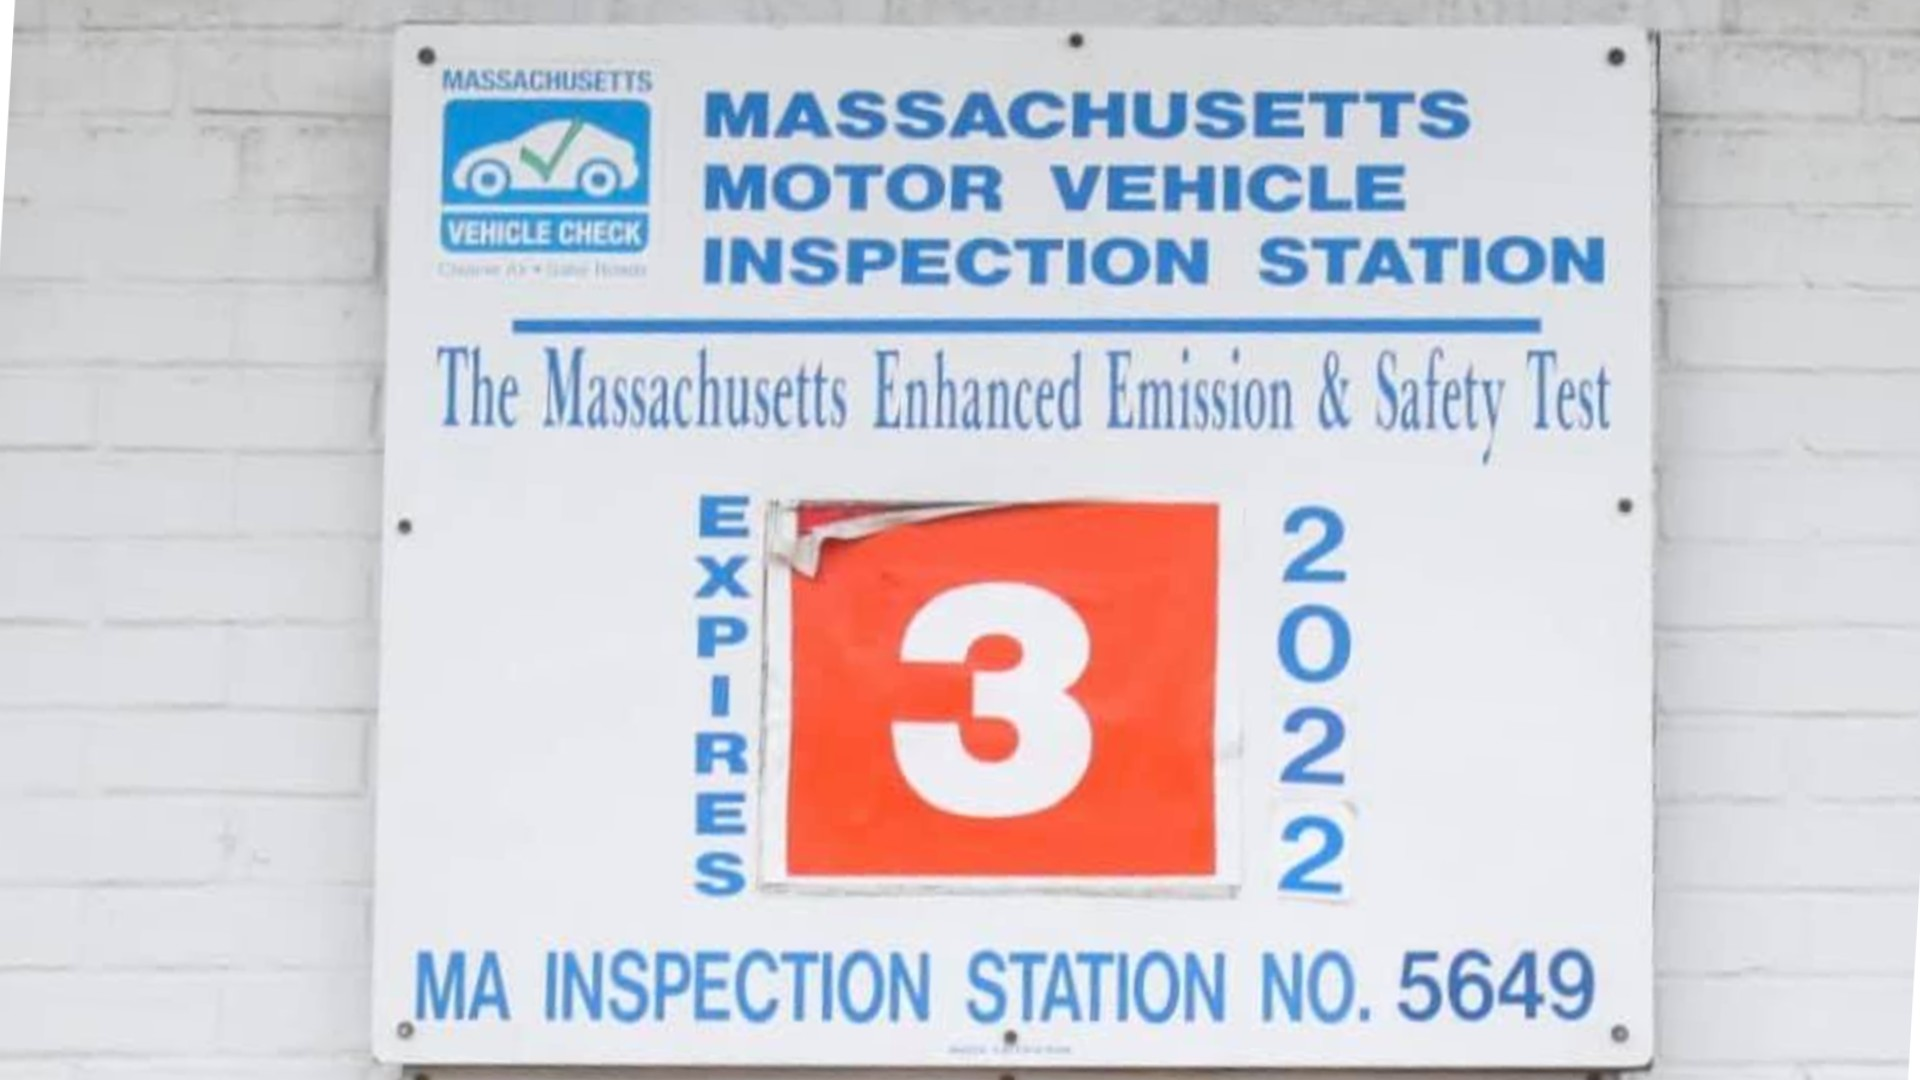 Massachusetts Motor Vehicle Inspection Station